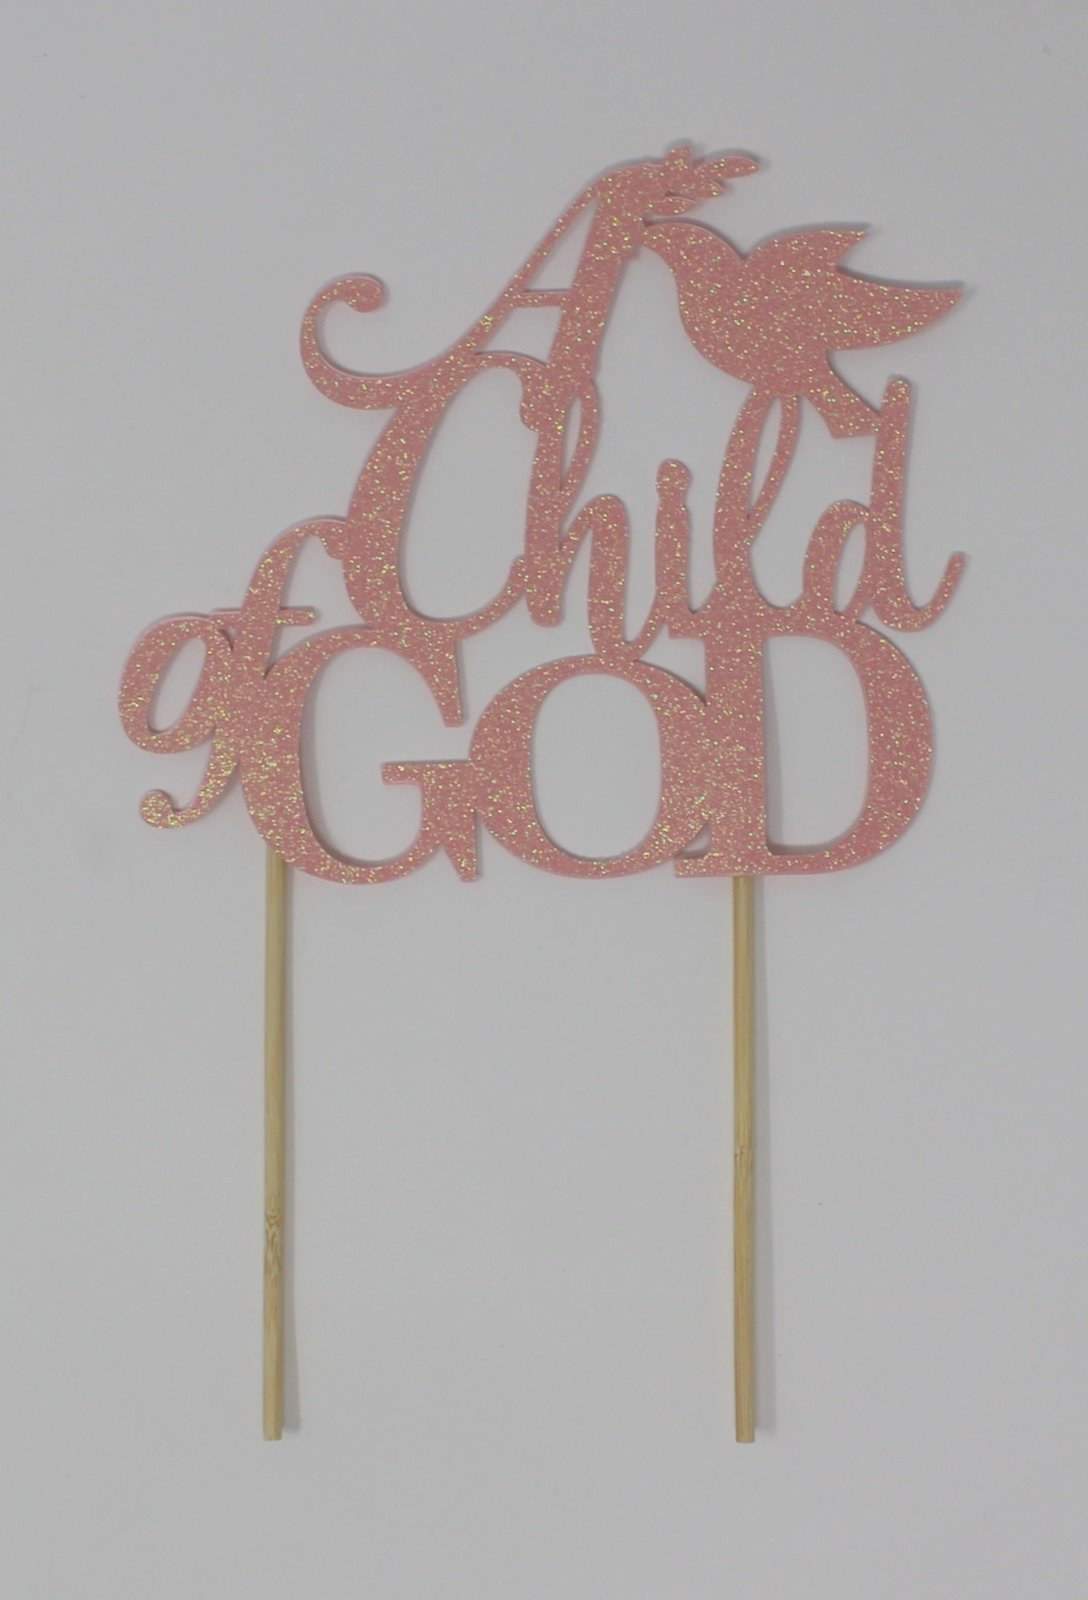 All About Details A Child Of GOD Cake Topper,1pc, Baptismal, Christening, Dedication, Party Decor, Glitter Topper (Glitter Pastel Pink)